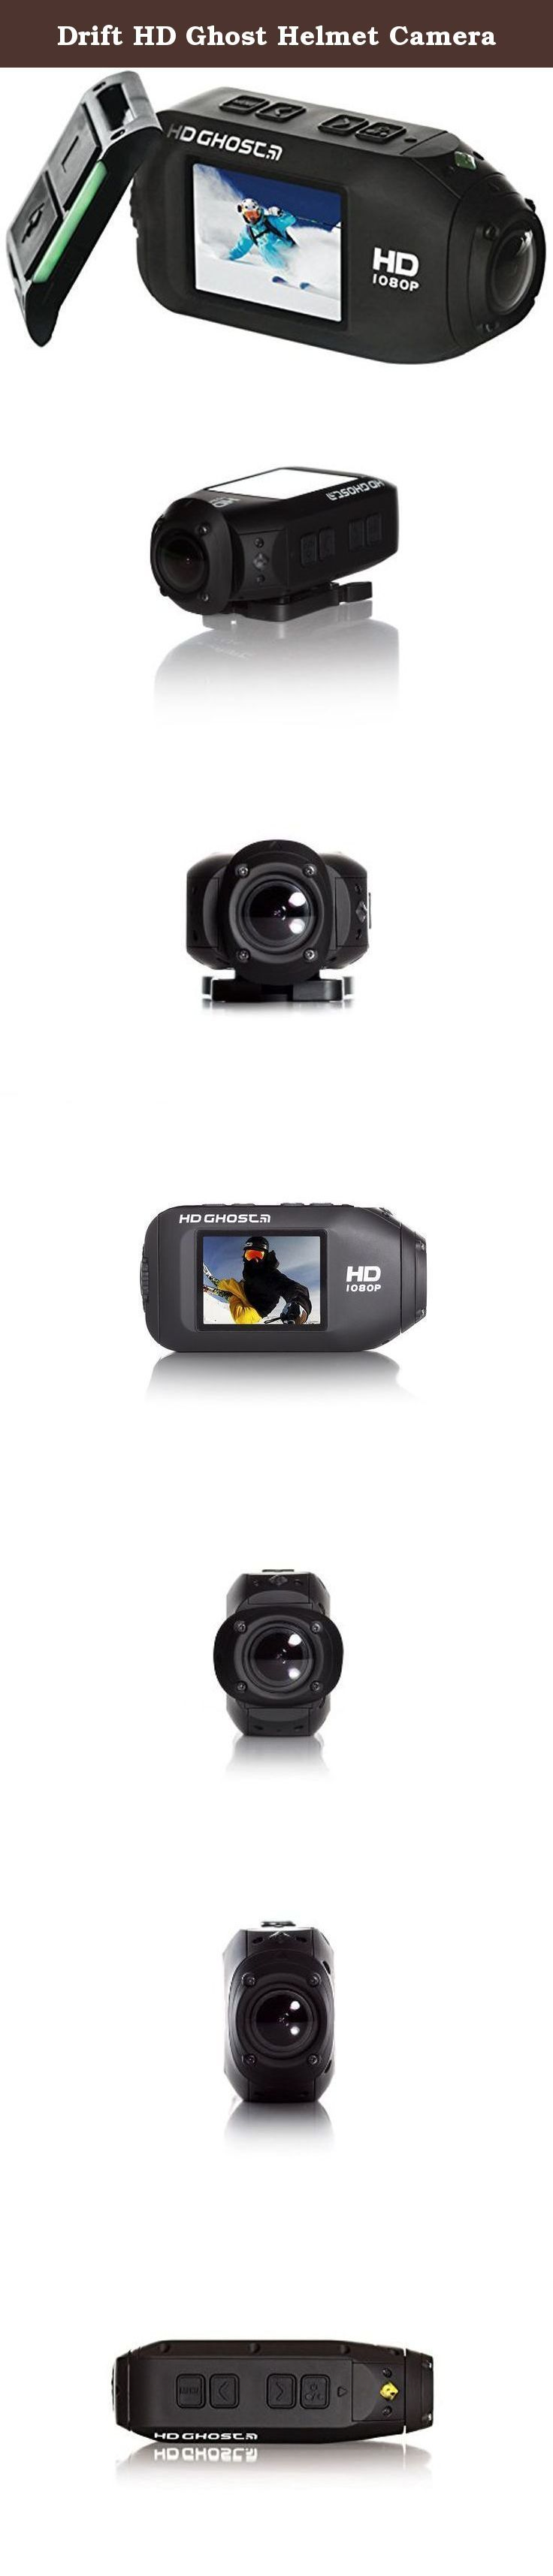 Drift HD Ghost Helmet Camera. Drift Innovation, the award-winning action sports technology company specializing in the capture and sharing of digital imagery, launched the most feature-rich and intuitive action camera yet - the Drift HD Ghost. Building upon a unique feature set, which includes an industry-first two-way LED remote control with on/off indicator light, video recording/tagging capabilities in continuous loop mode, and an integrated 2-inch Corning® Gorilla® Glass; LCD screen…